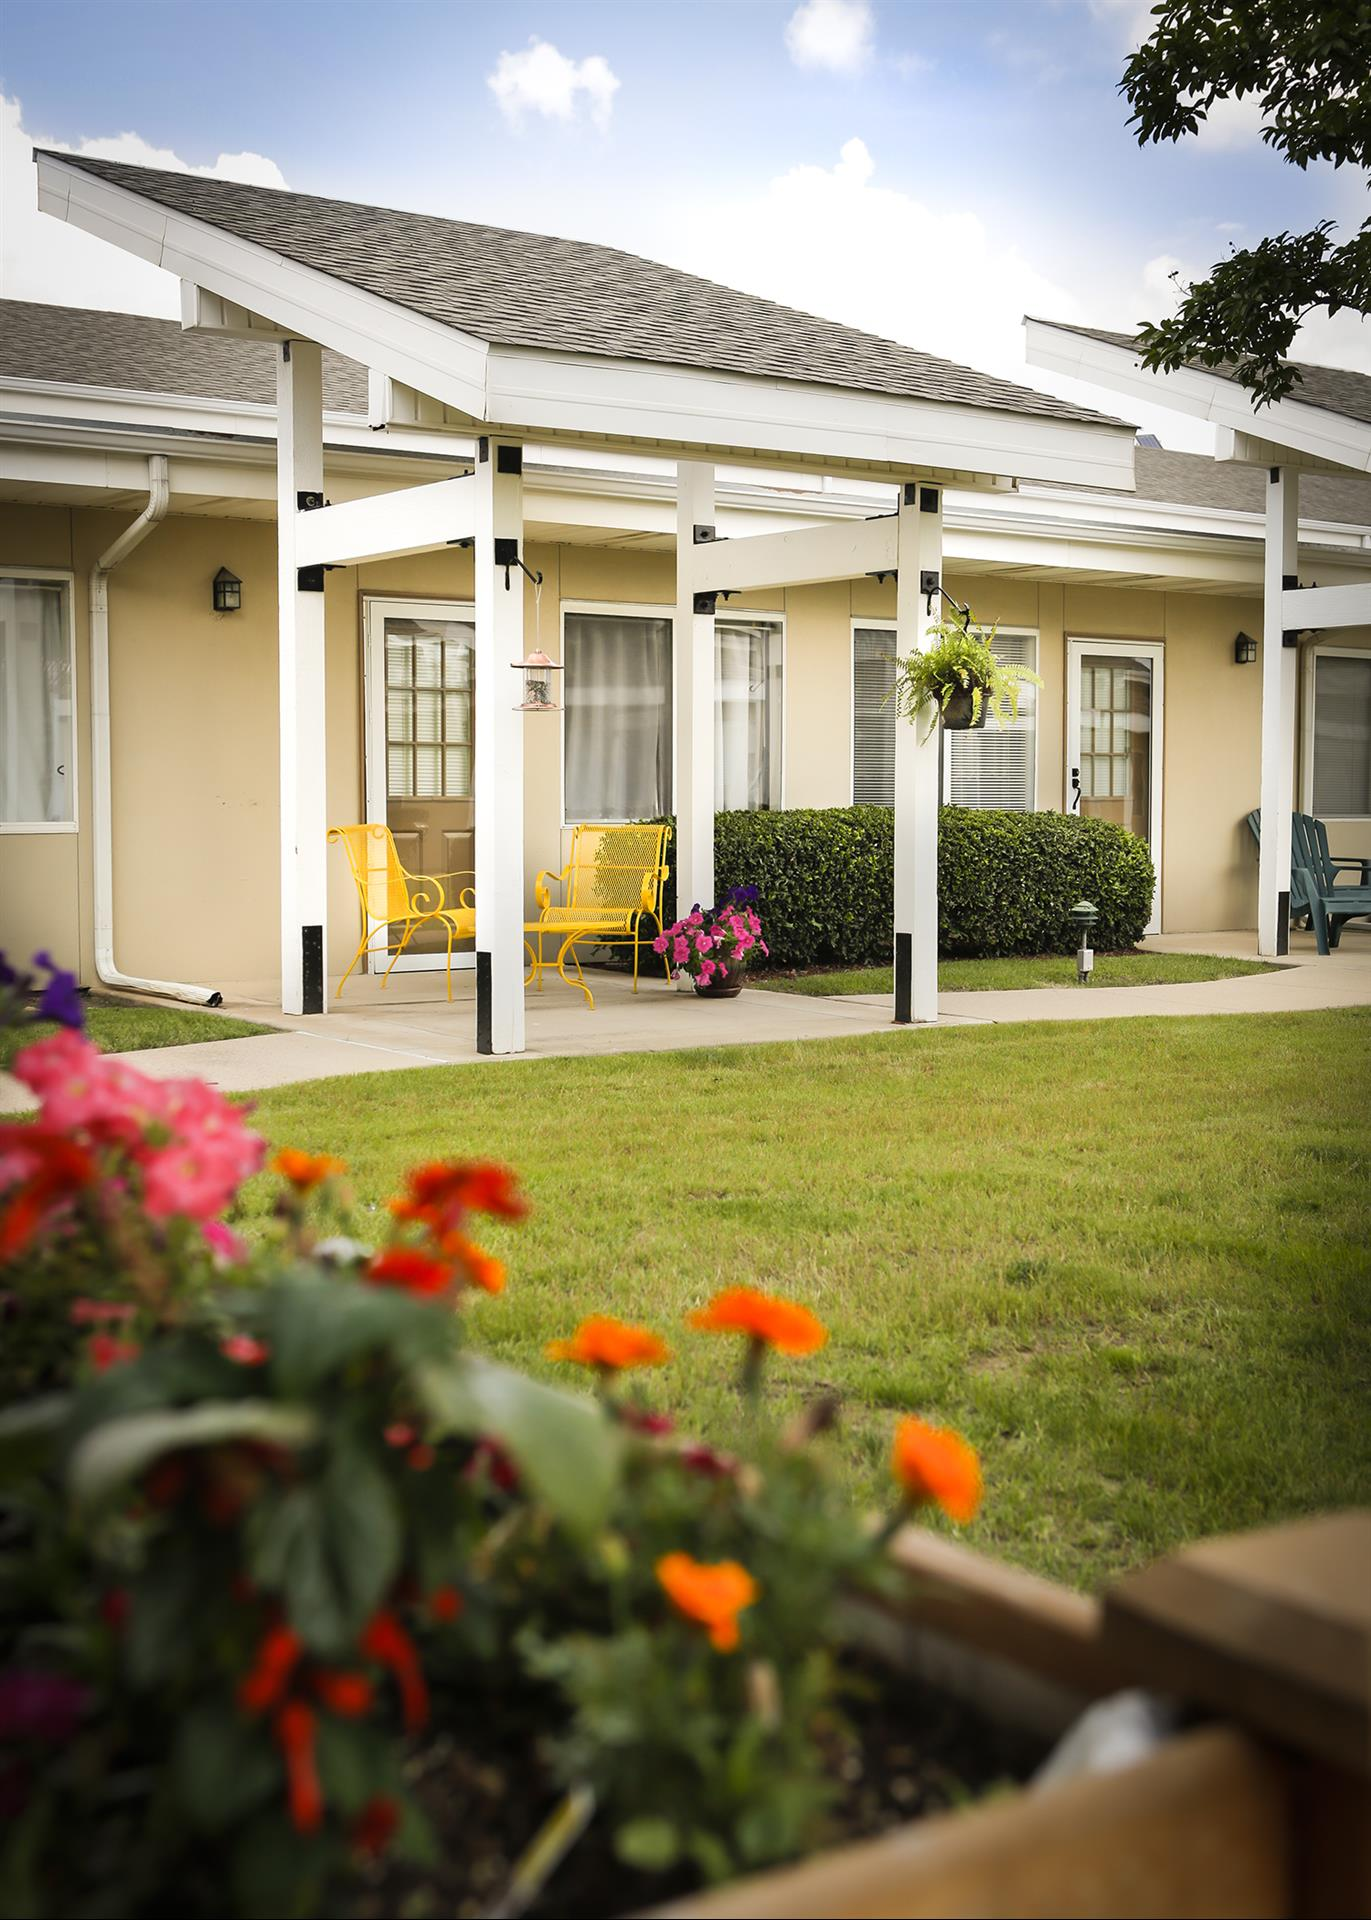 Bethesda Gardens Assisted Living And Memory Care Fort Worth In Ft Worth Tx 817 292 8